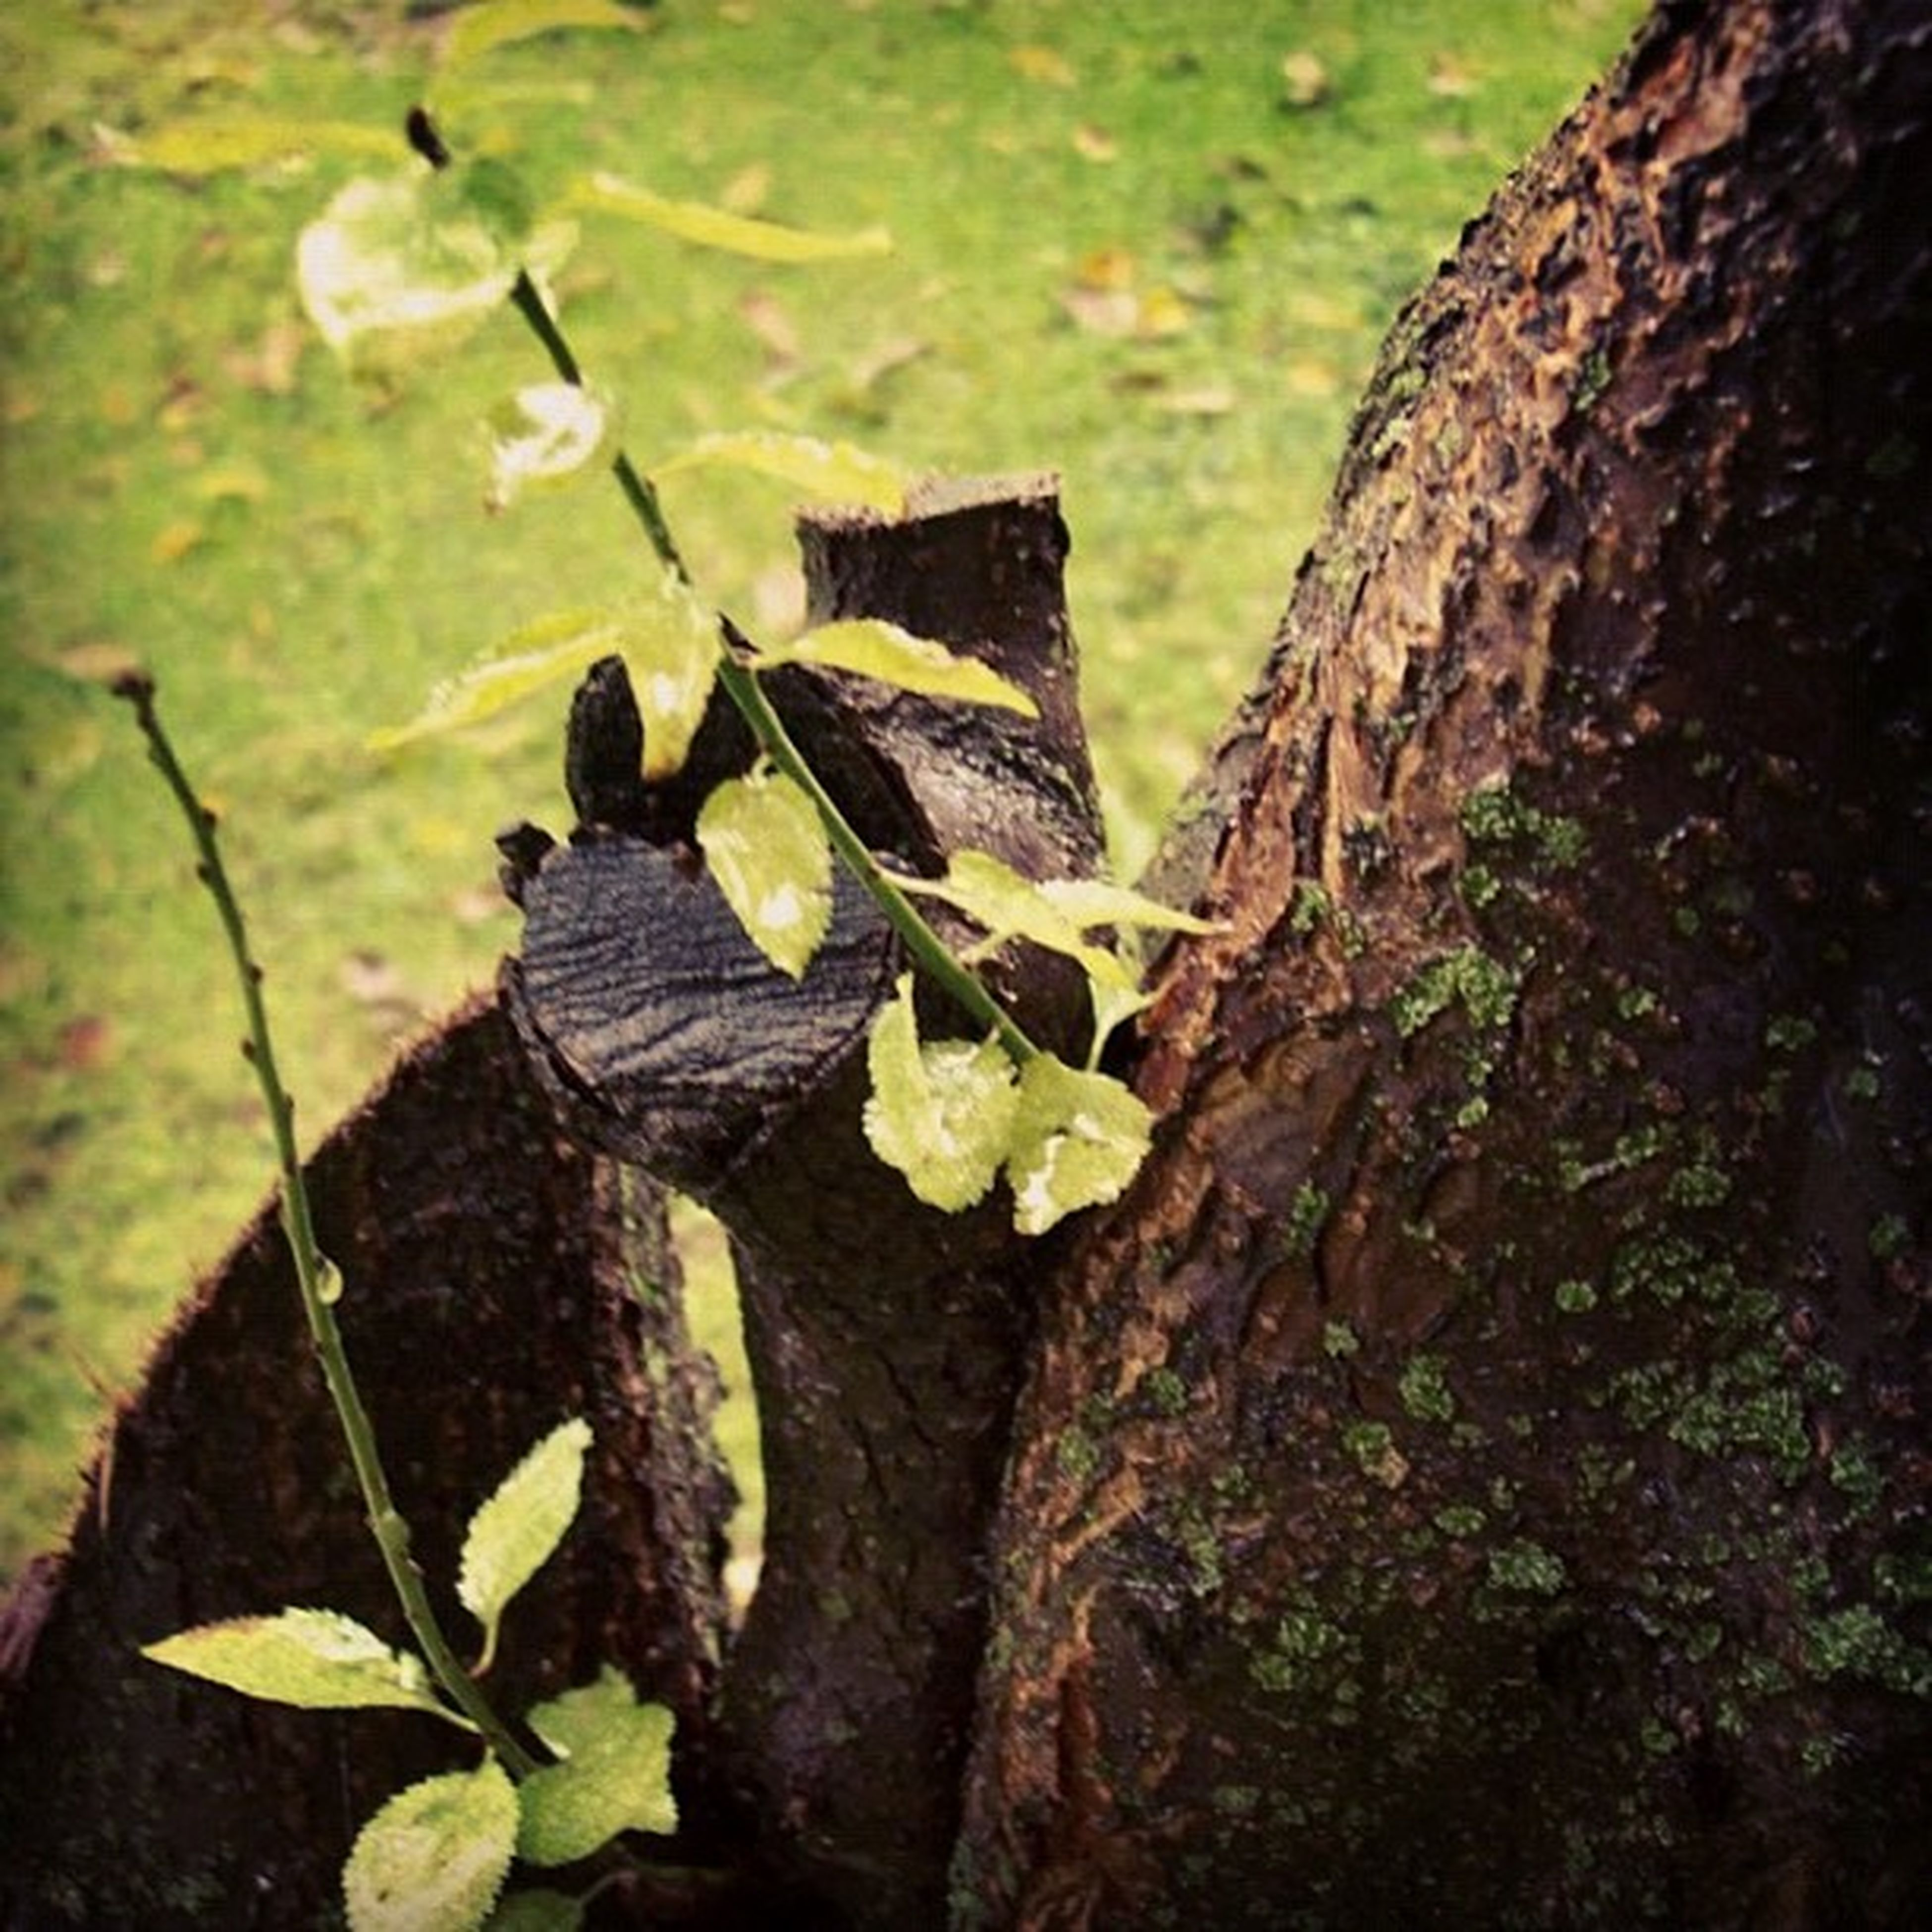 leaf, tree trunk, focus on foreground, close-up, wood - material, nature, tree, growth, forest, plant, textured, outdoors, day, tree stump, wildlife, no people, moss, natural pattern, beauty in nature, branch